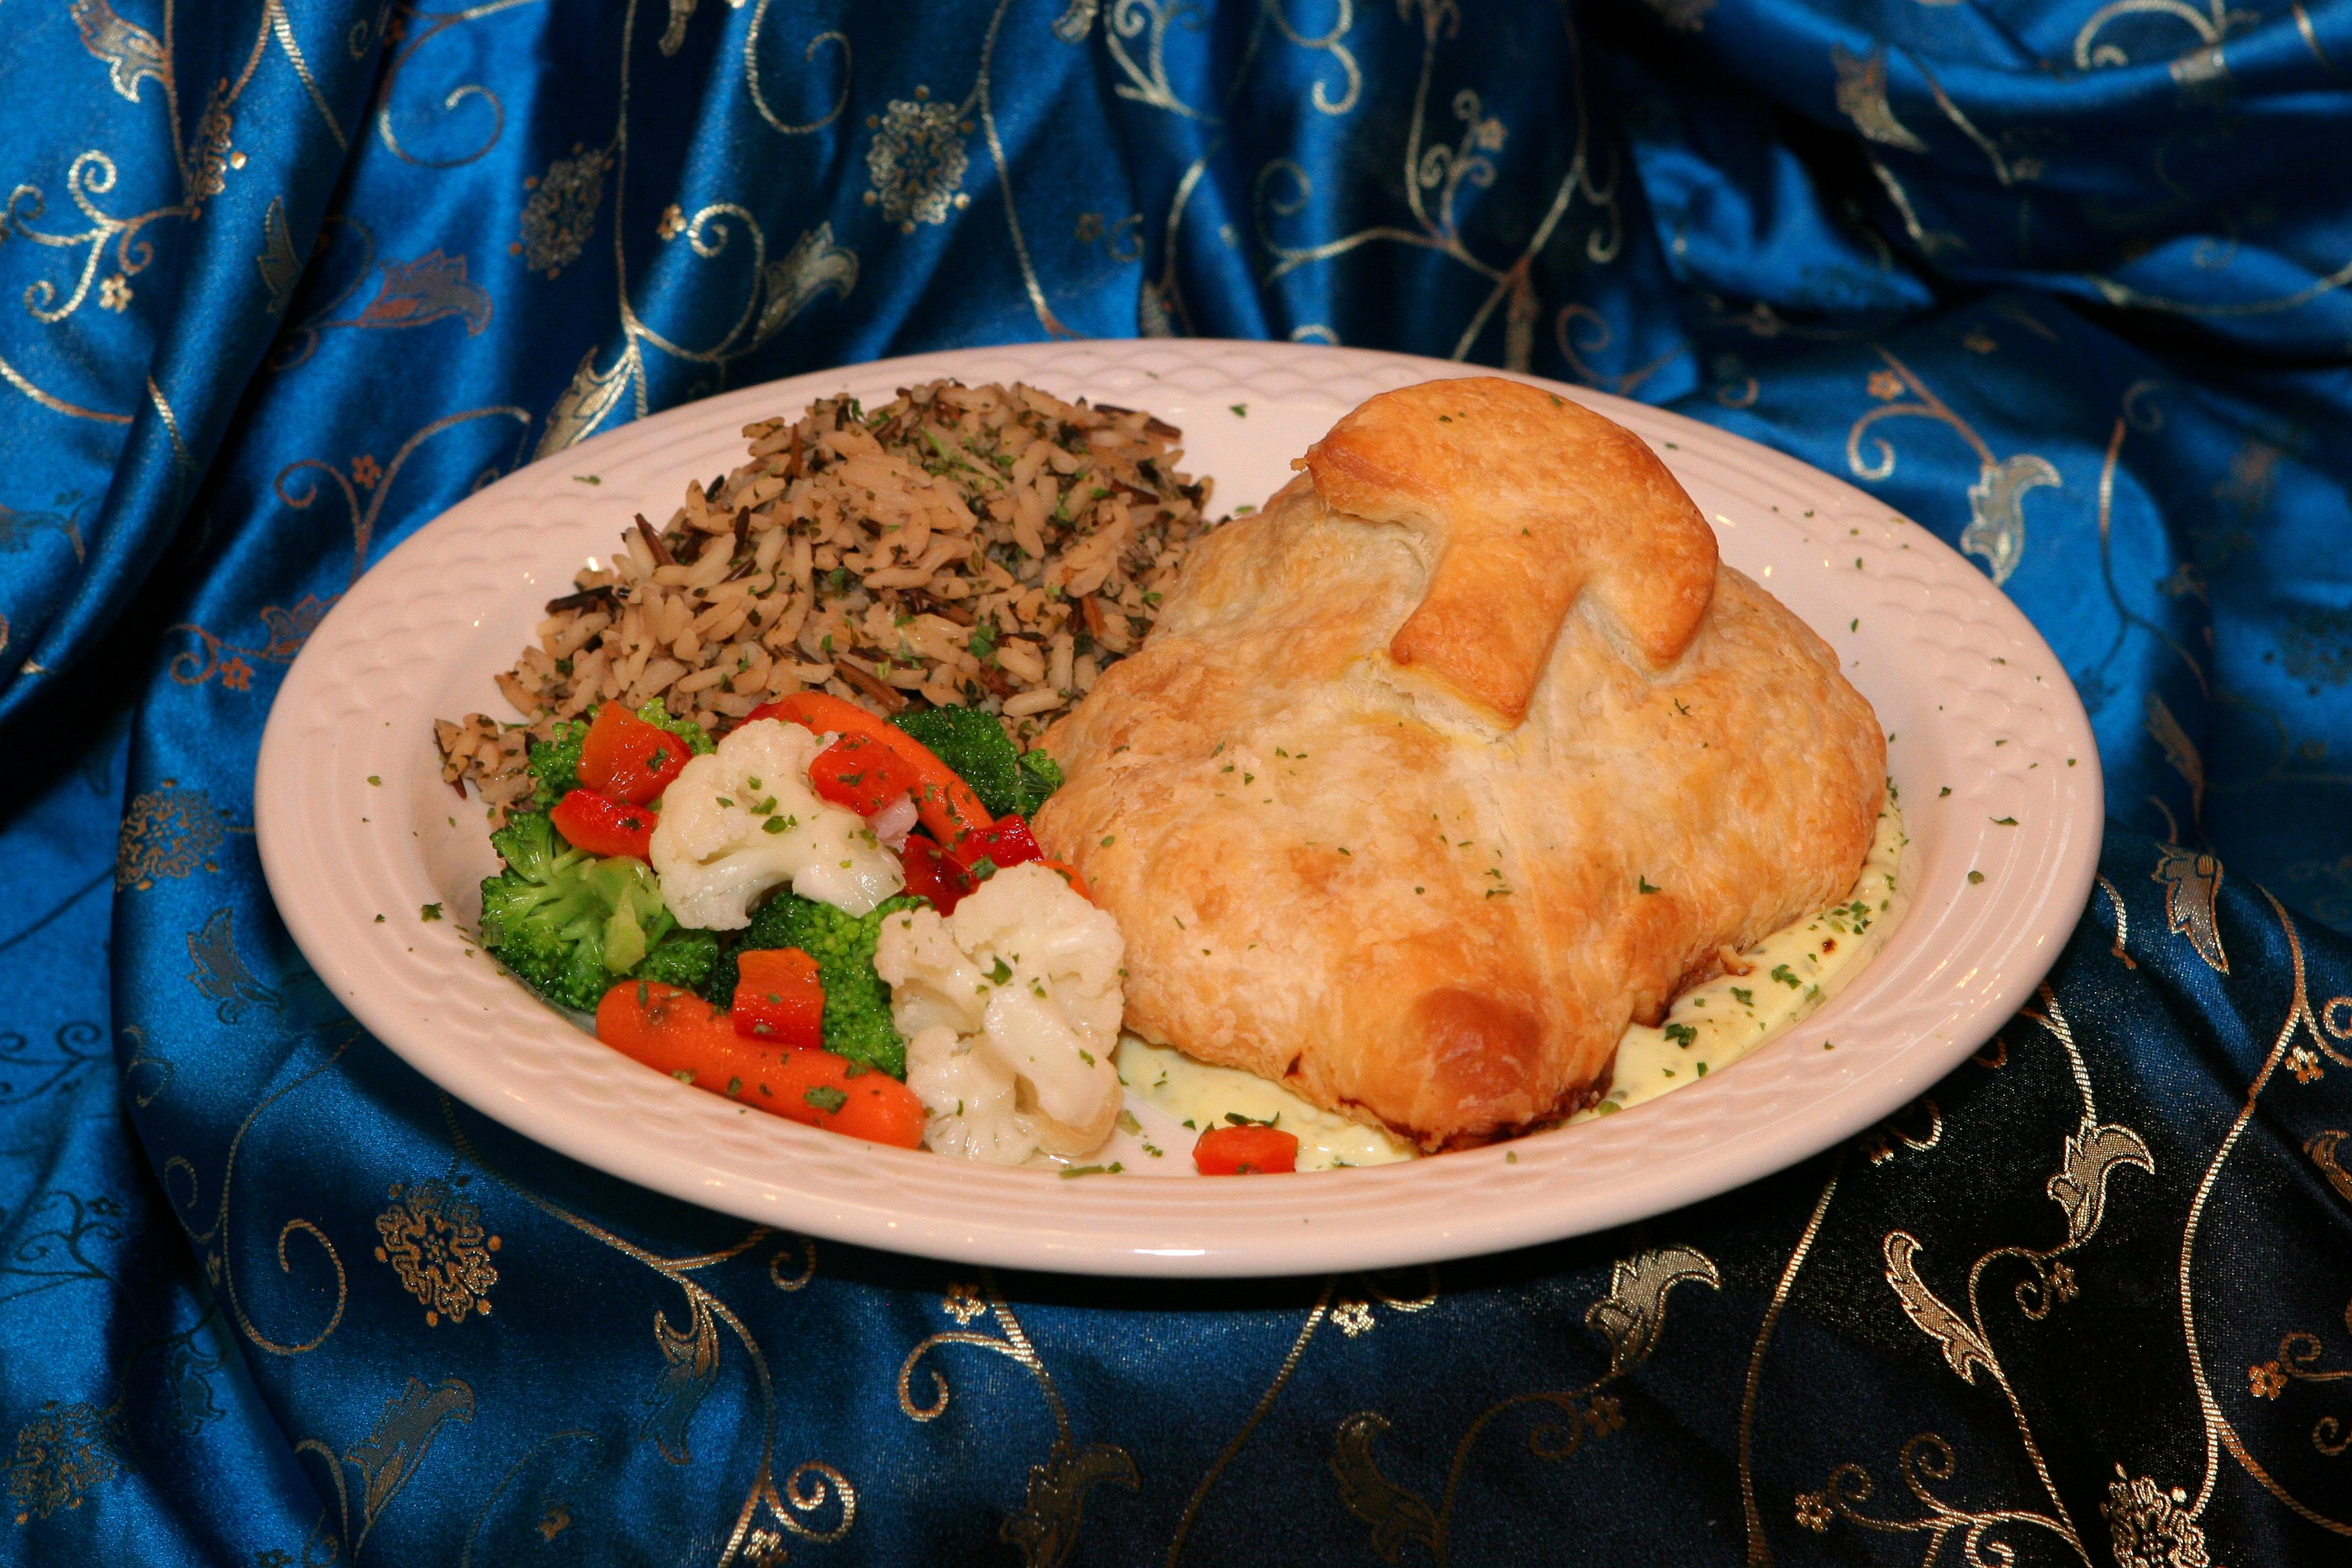 Chicken Wellington - Boneless breast of chicken, mushrooms duxelle wrapped in puff pastry with a veloute sauce #LaurelManor #Cuisine #MichiganWeddings